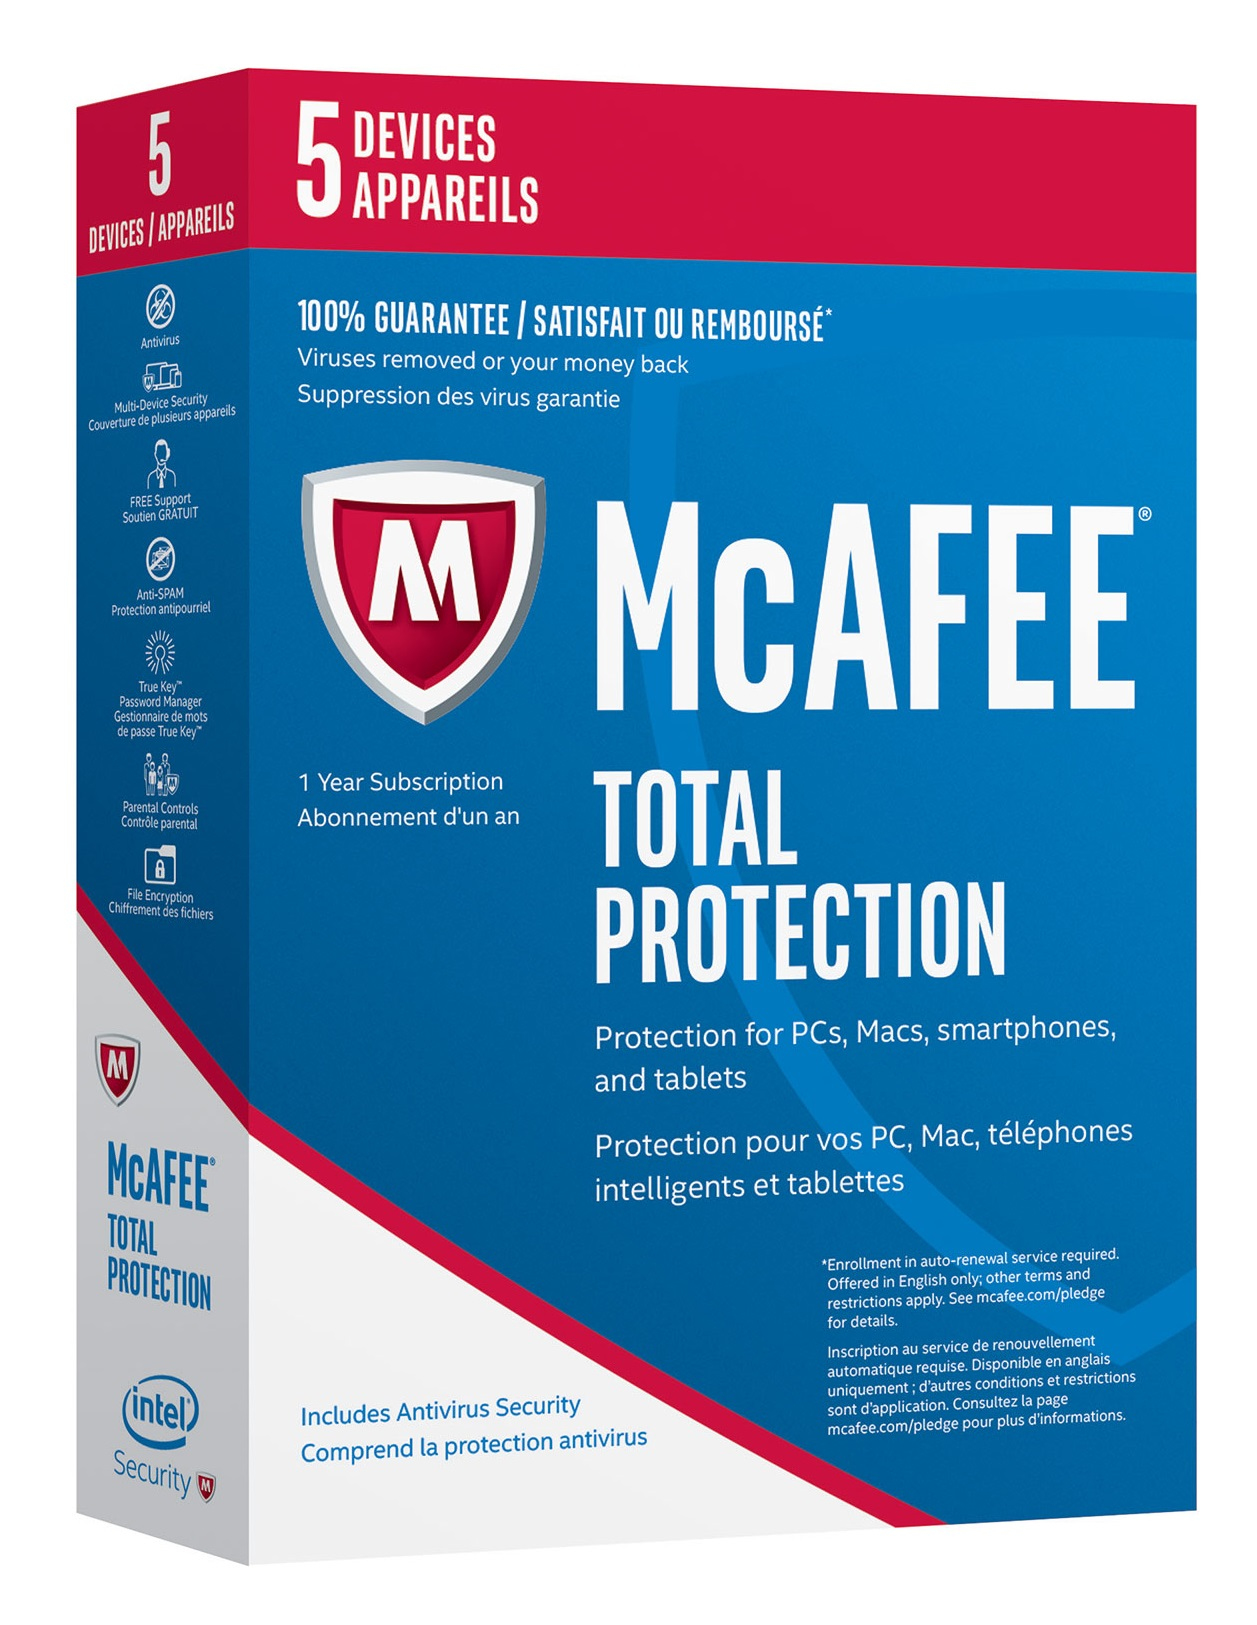 McAfee 2017 Total Protection 5 D